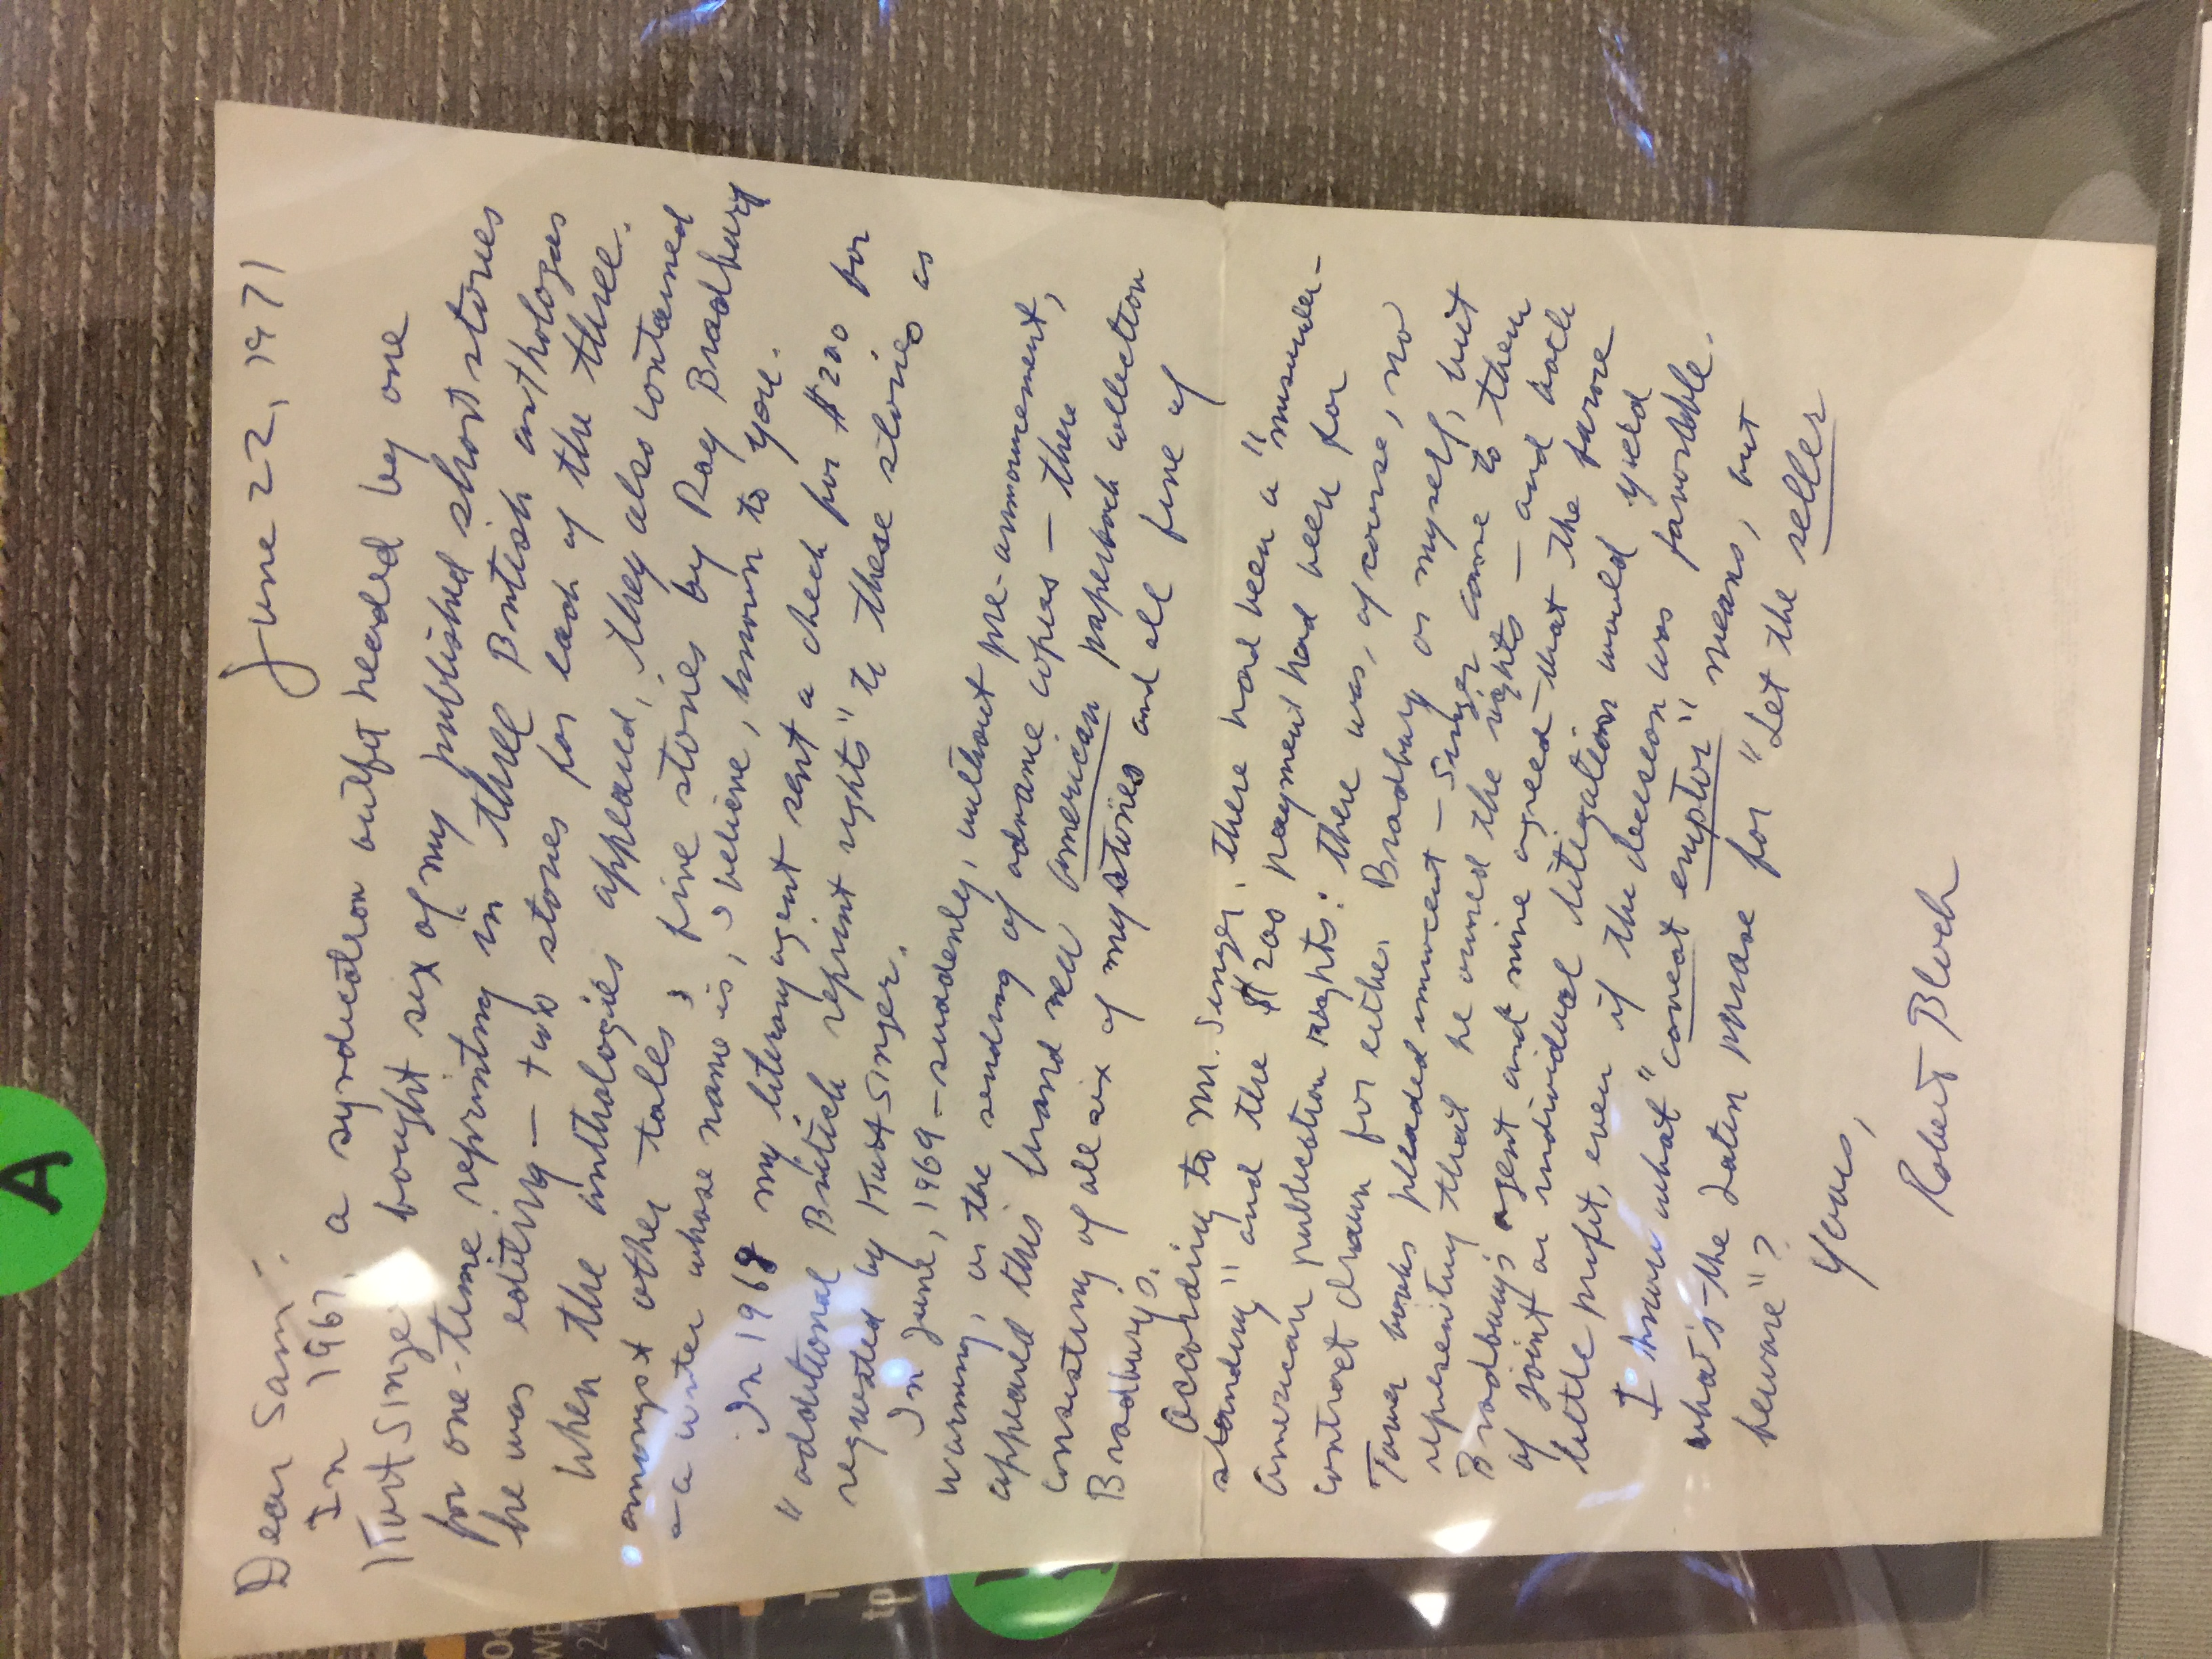 Robert Bloch letter to Sam Peeples, one of two in the auction